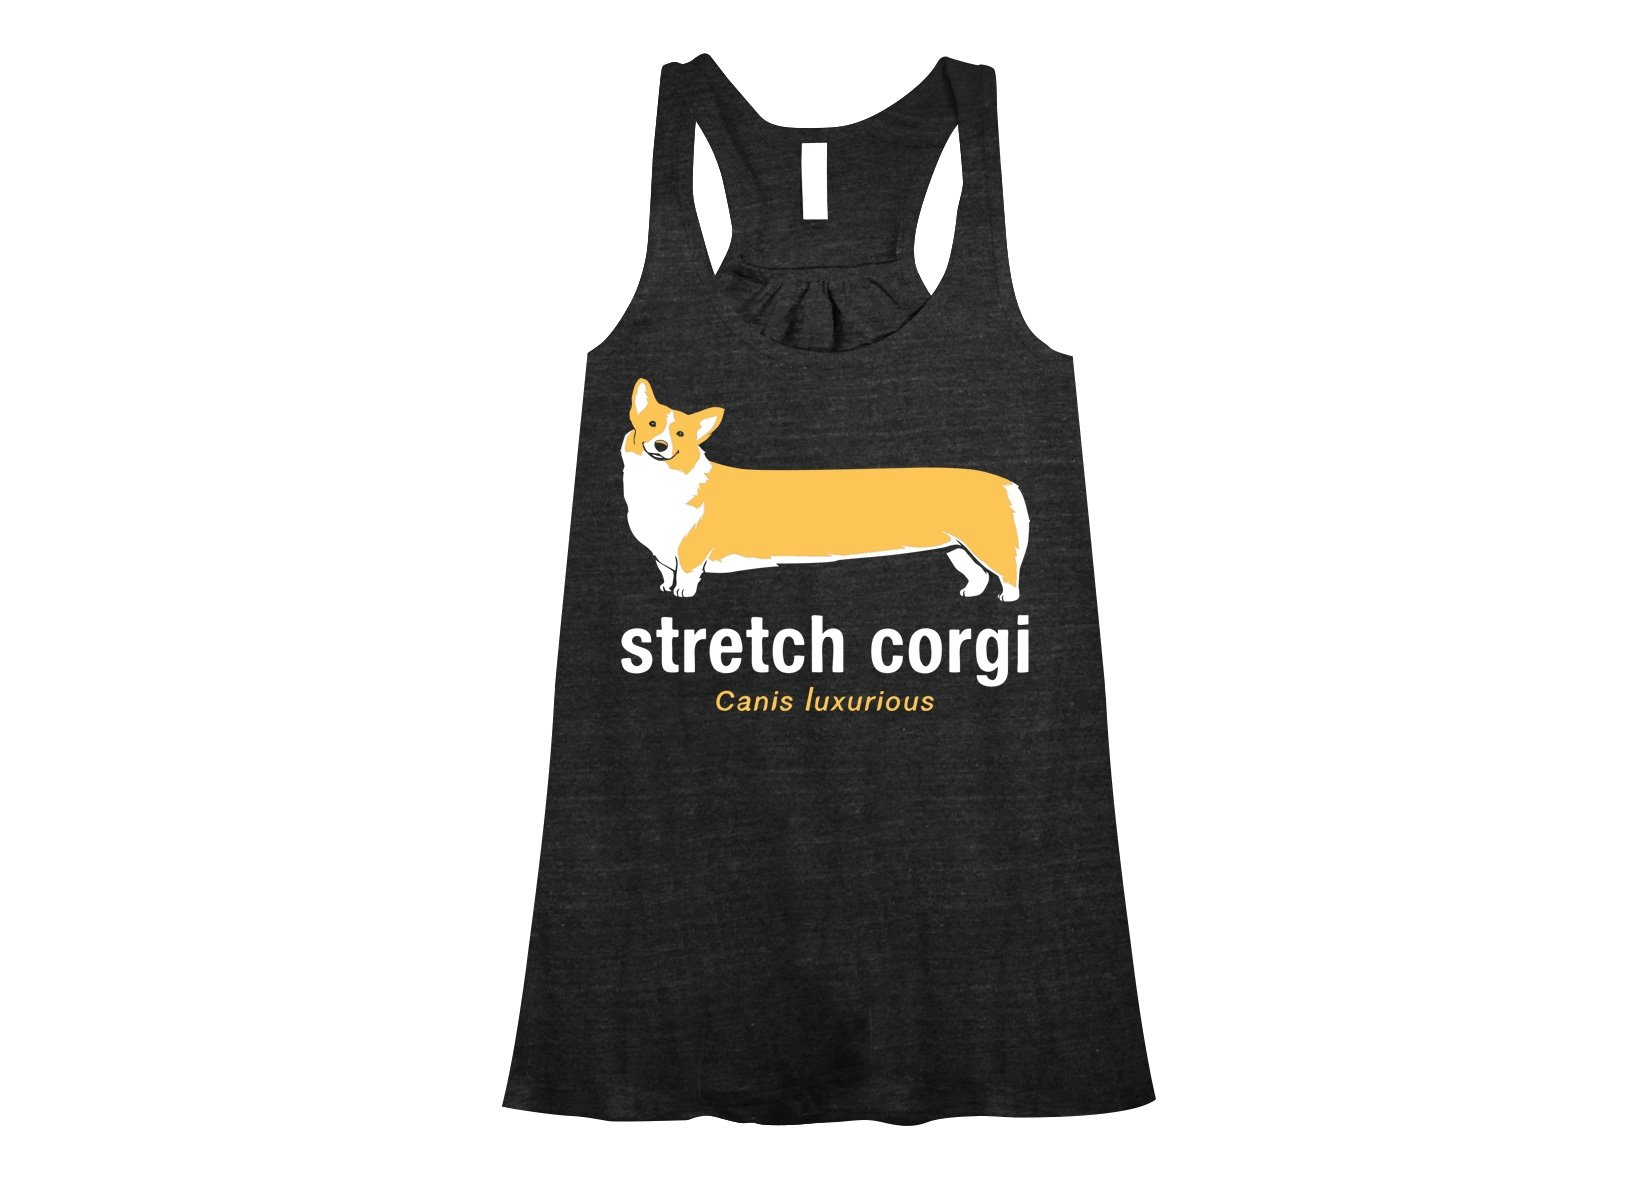 Stretch Corgi on Womens Tanks T-Shirt